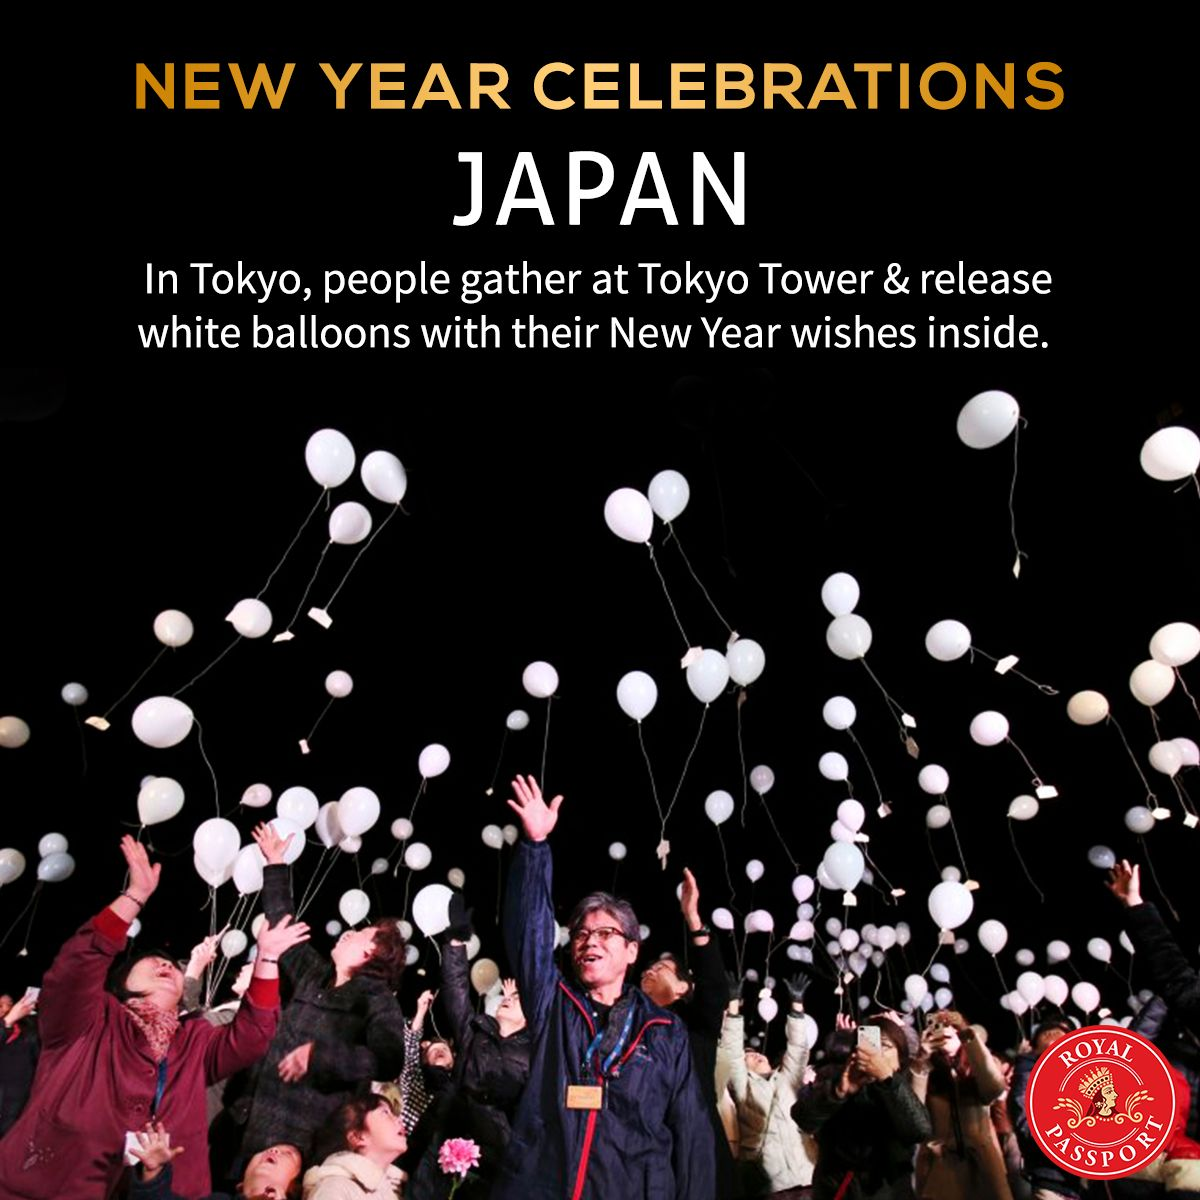 Even though people in Tokyo celebrate NewYearsEve in